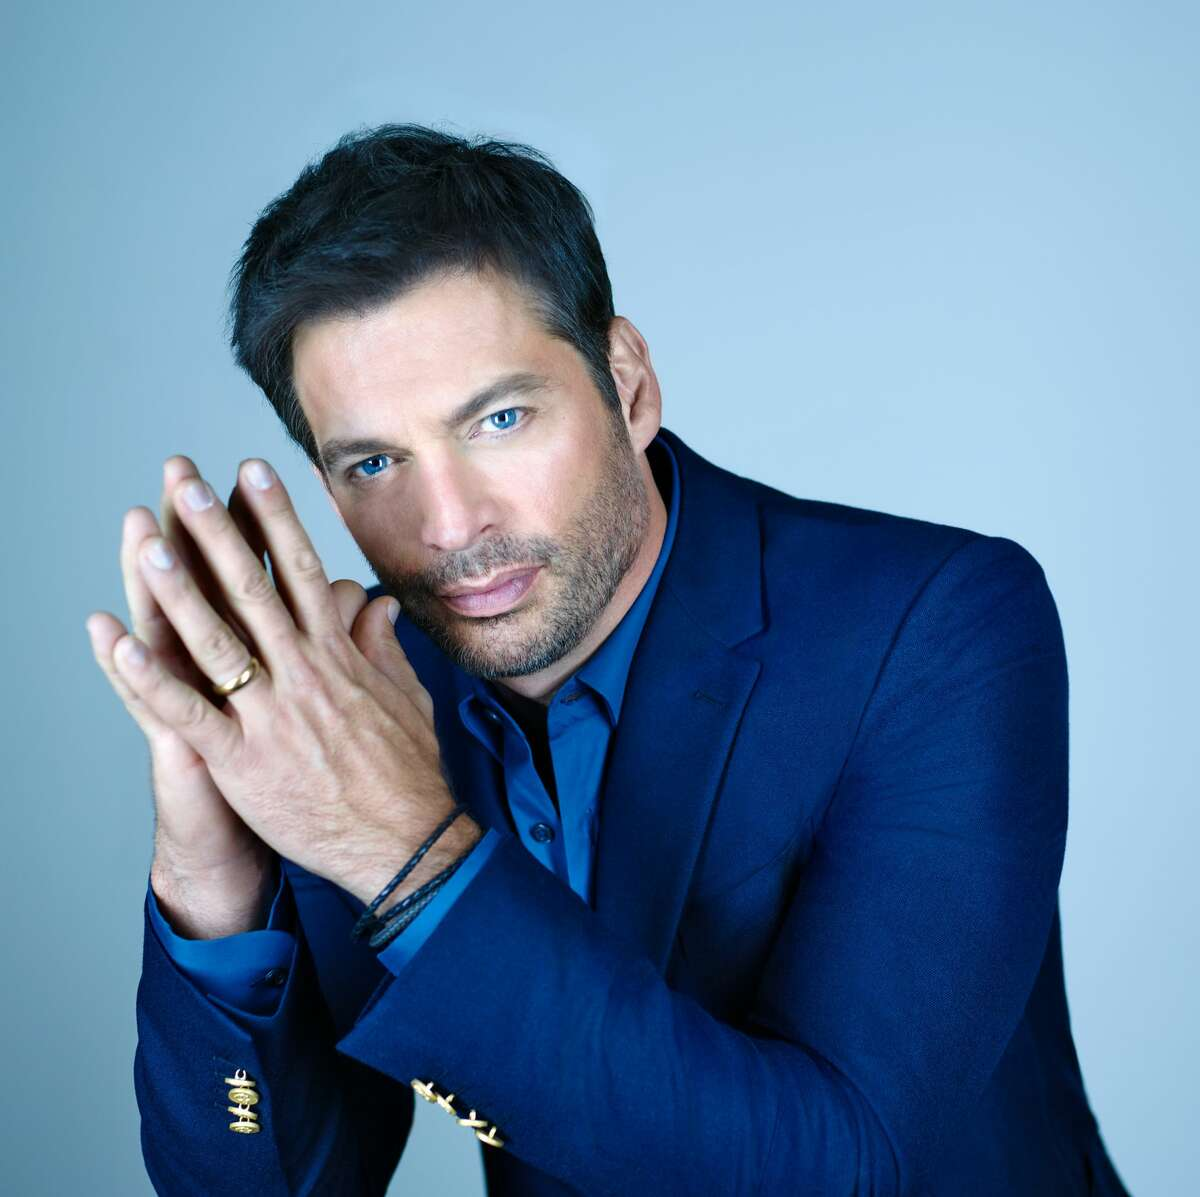 Harry Connick Jr. will perform in Bridgeport on Aug. 15.